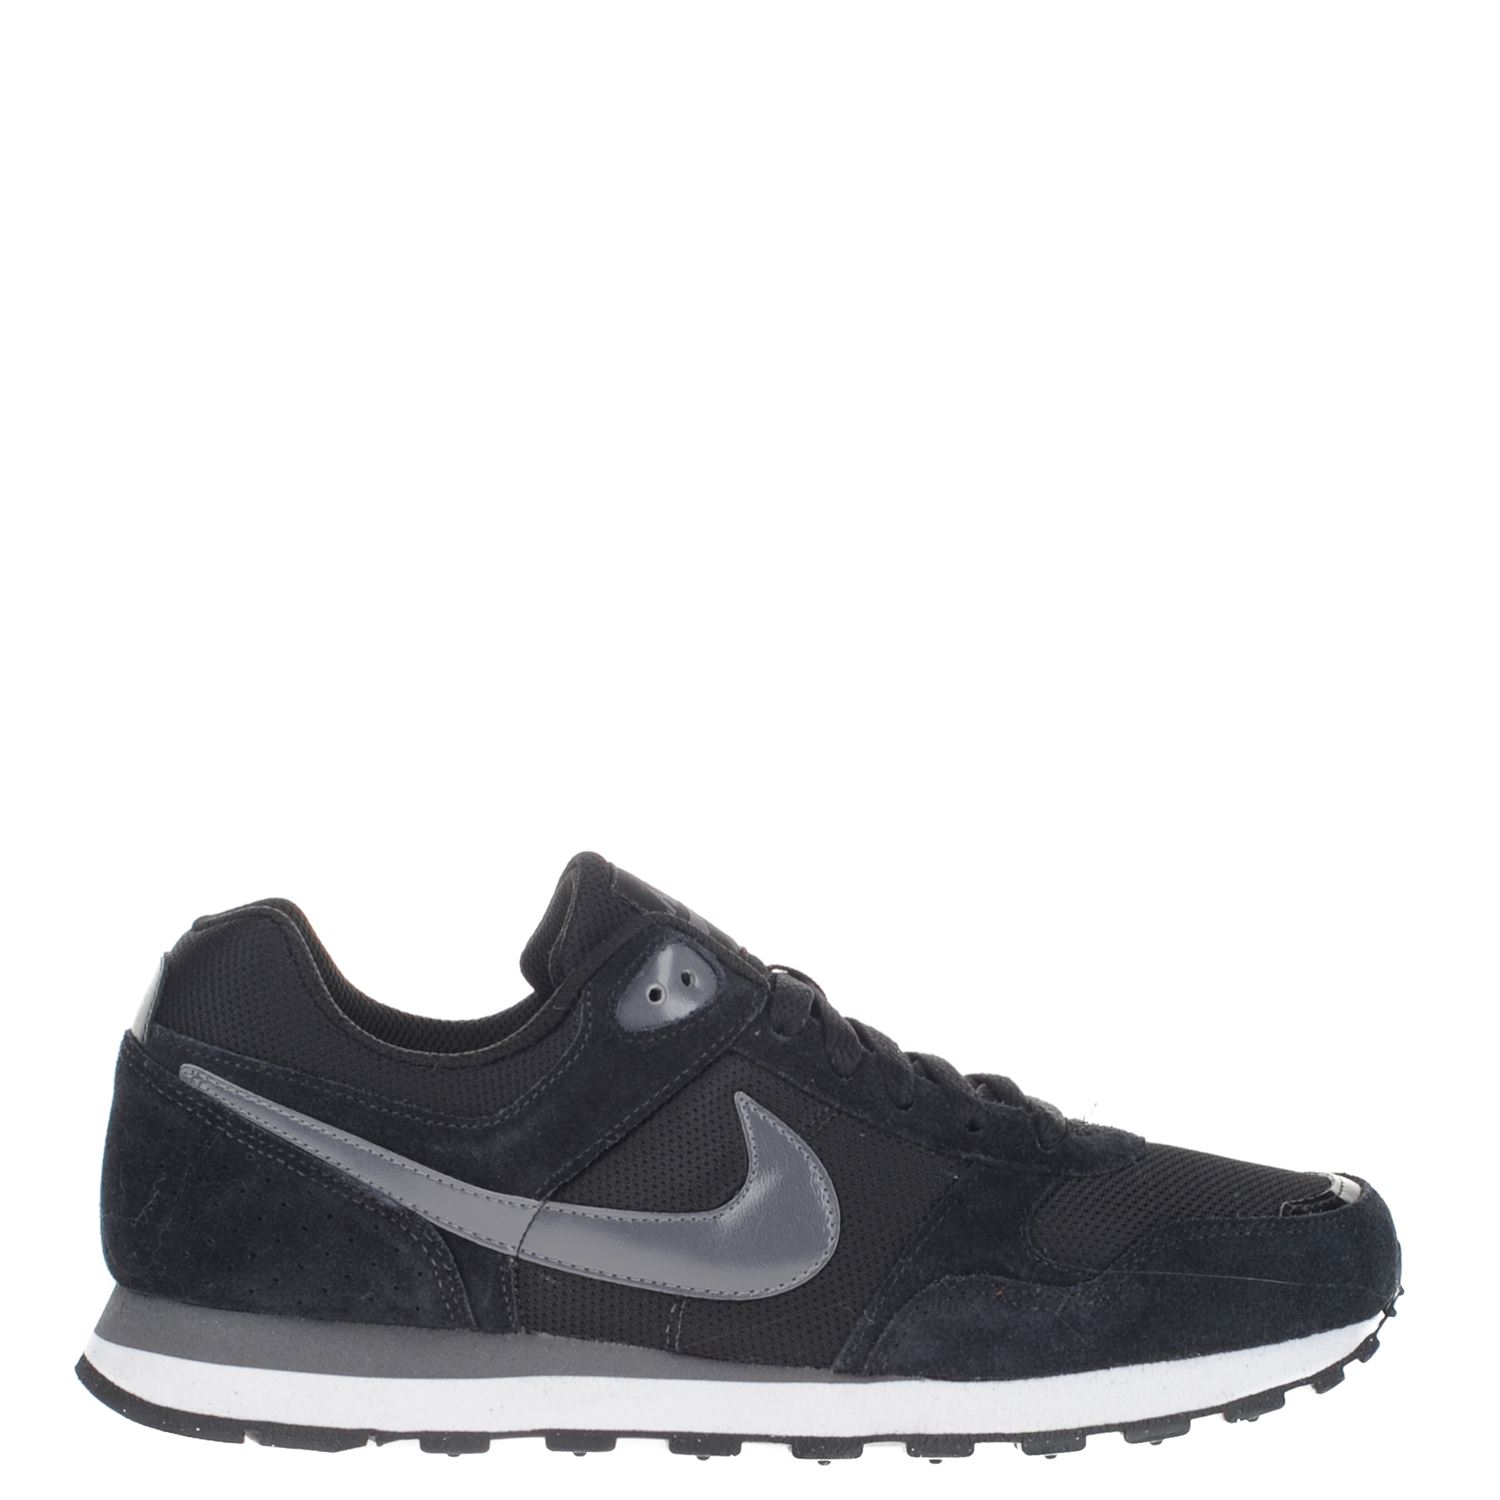 Nike Sneakers Heren Sale